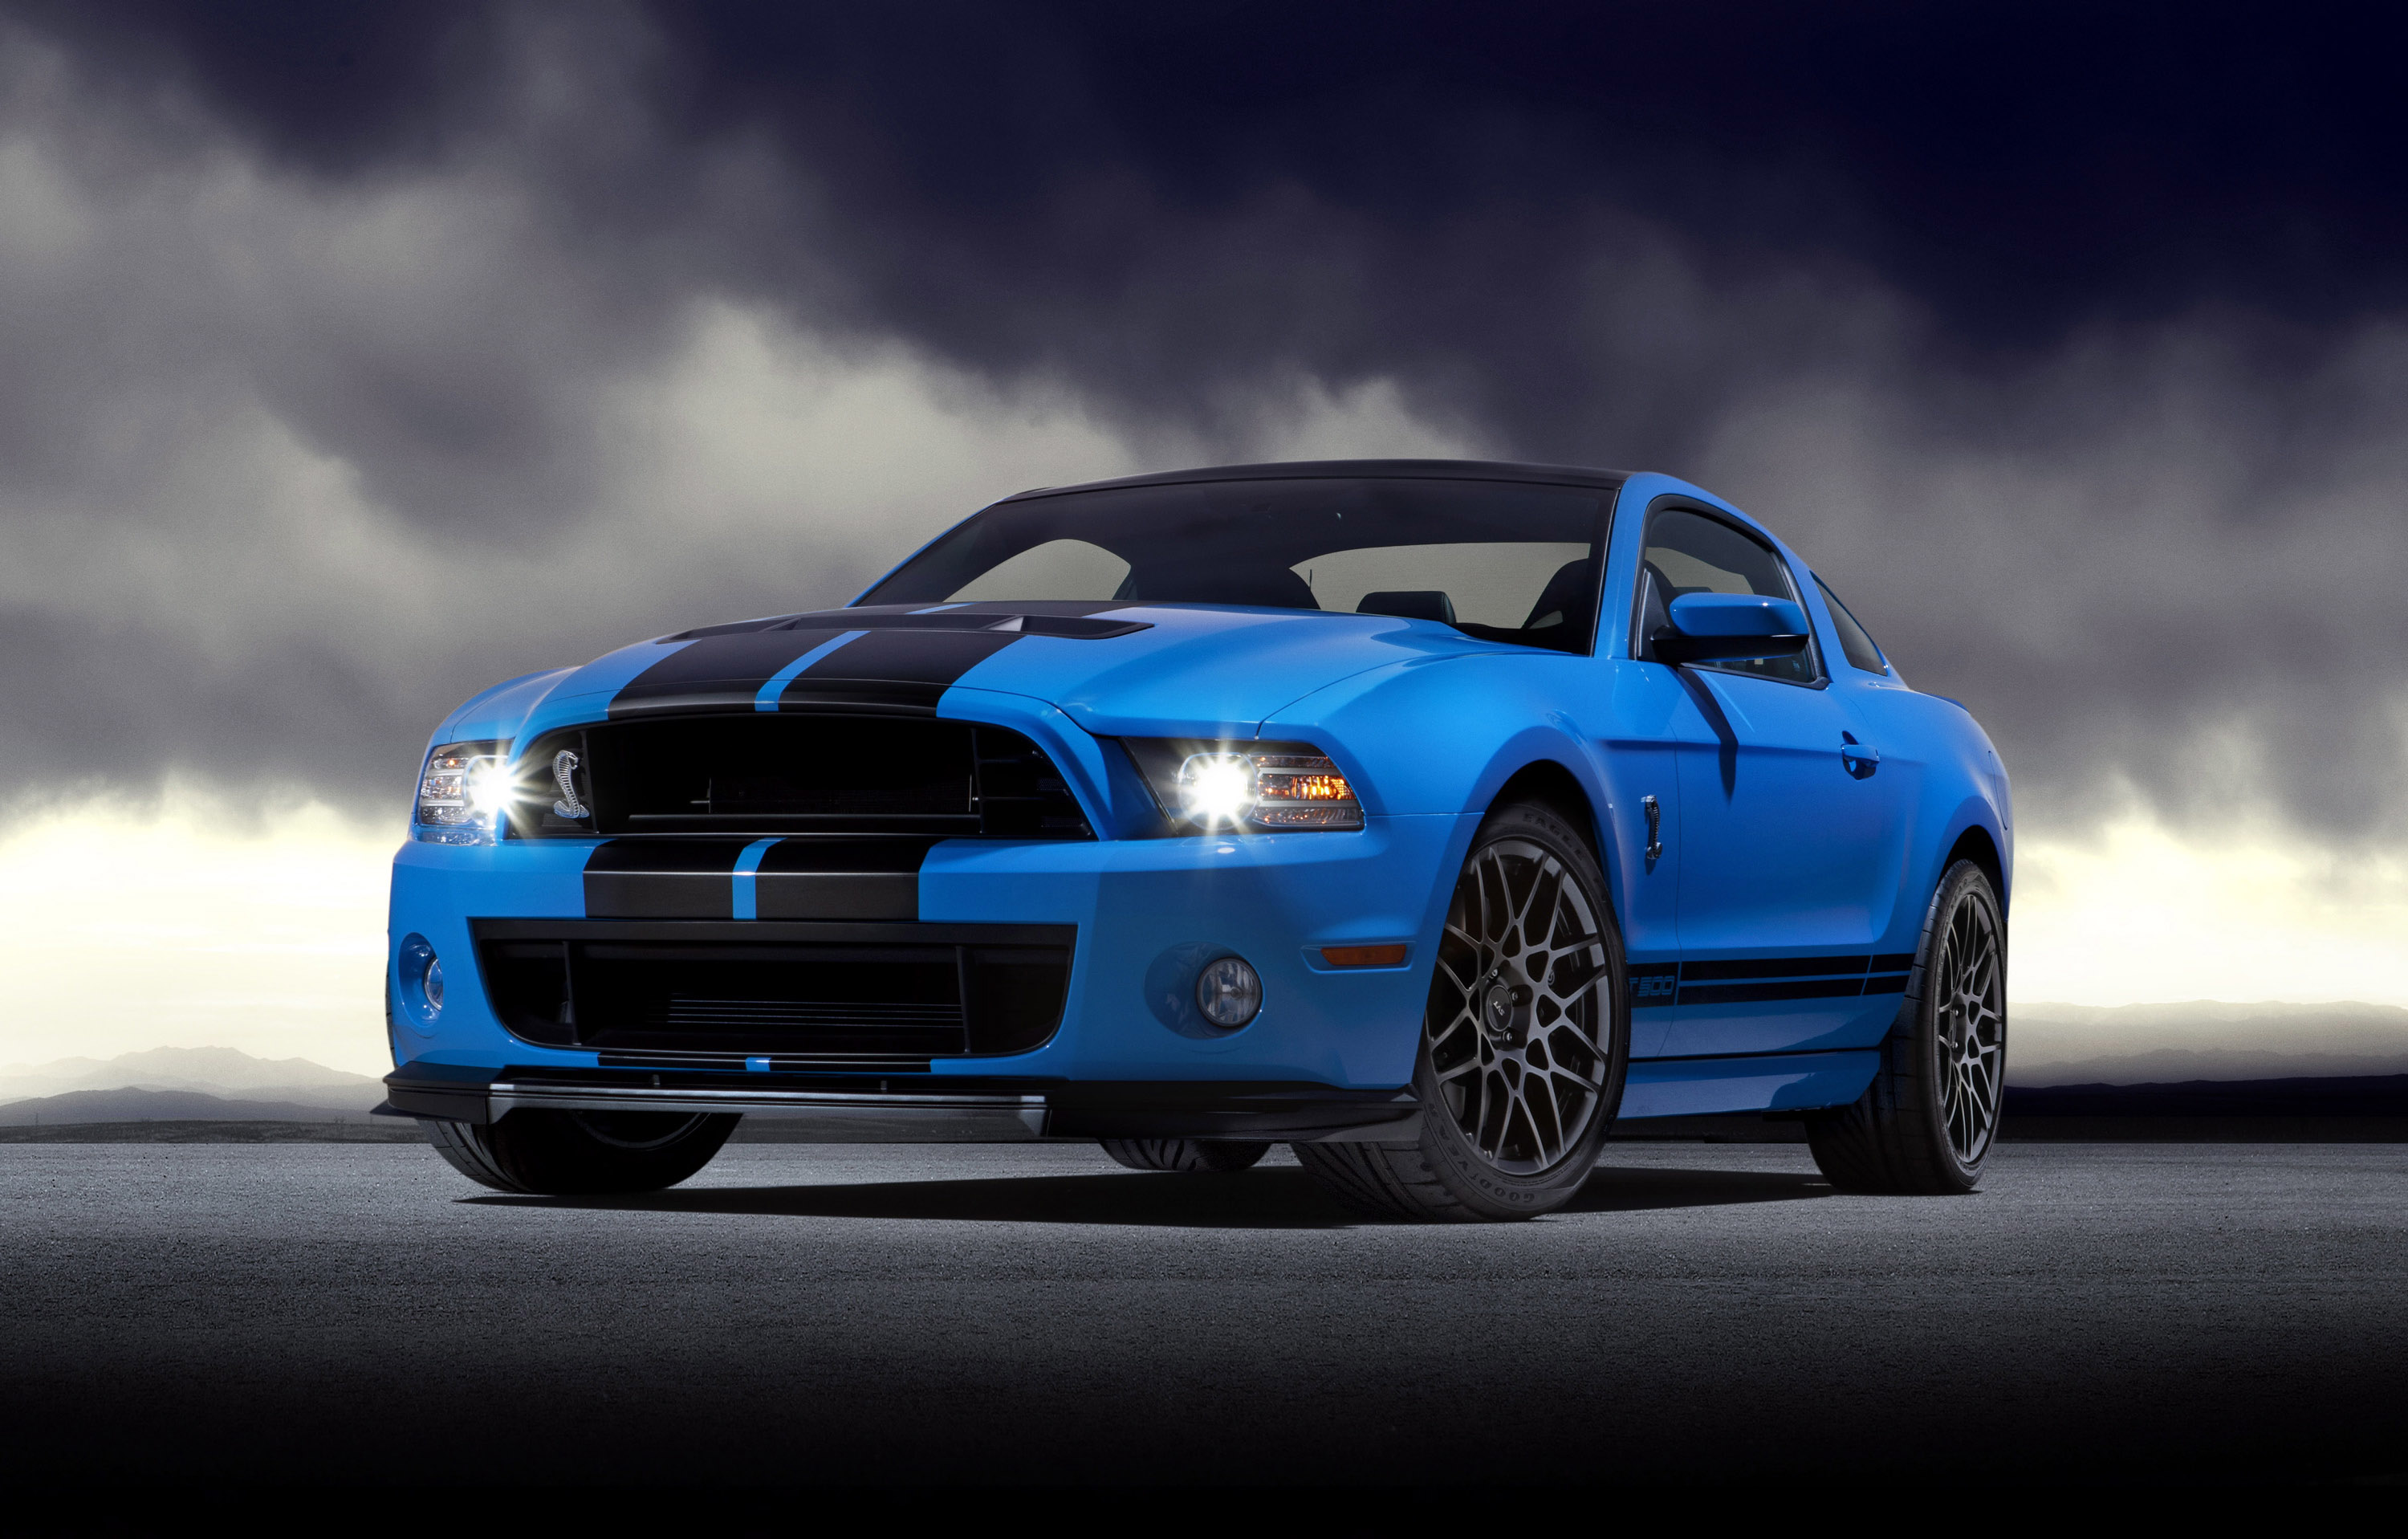 2013 Ford Shelby GT500 Picture #1 of 11